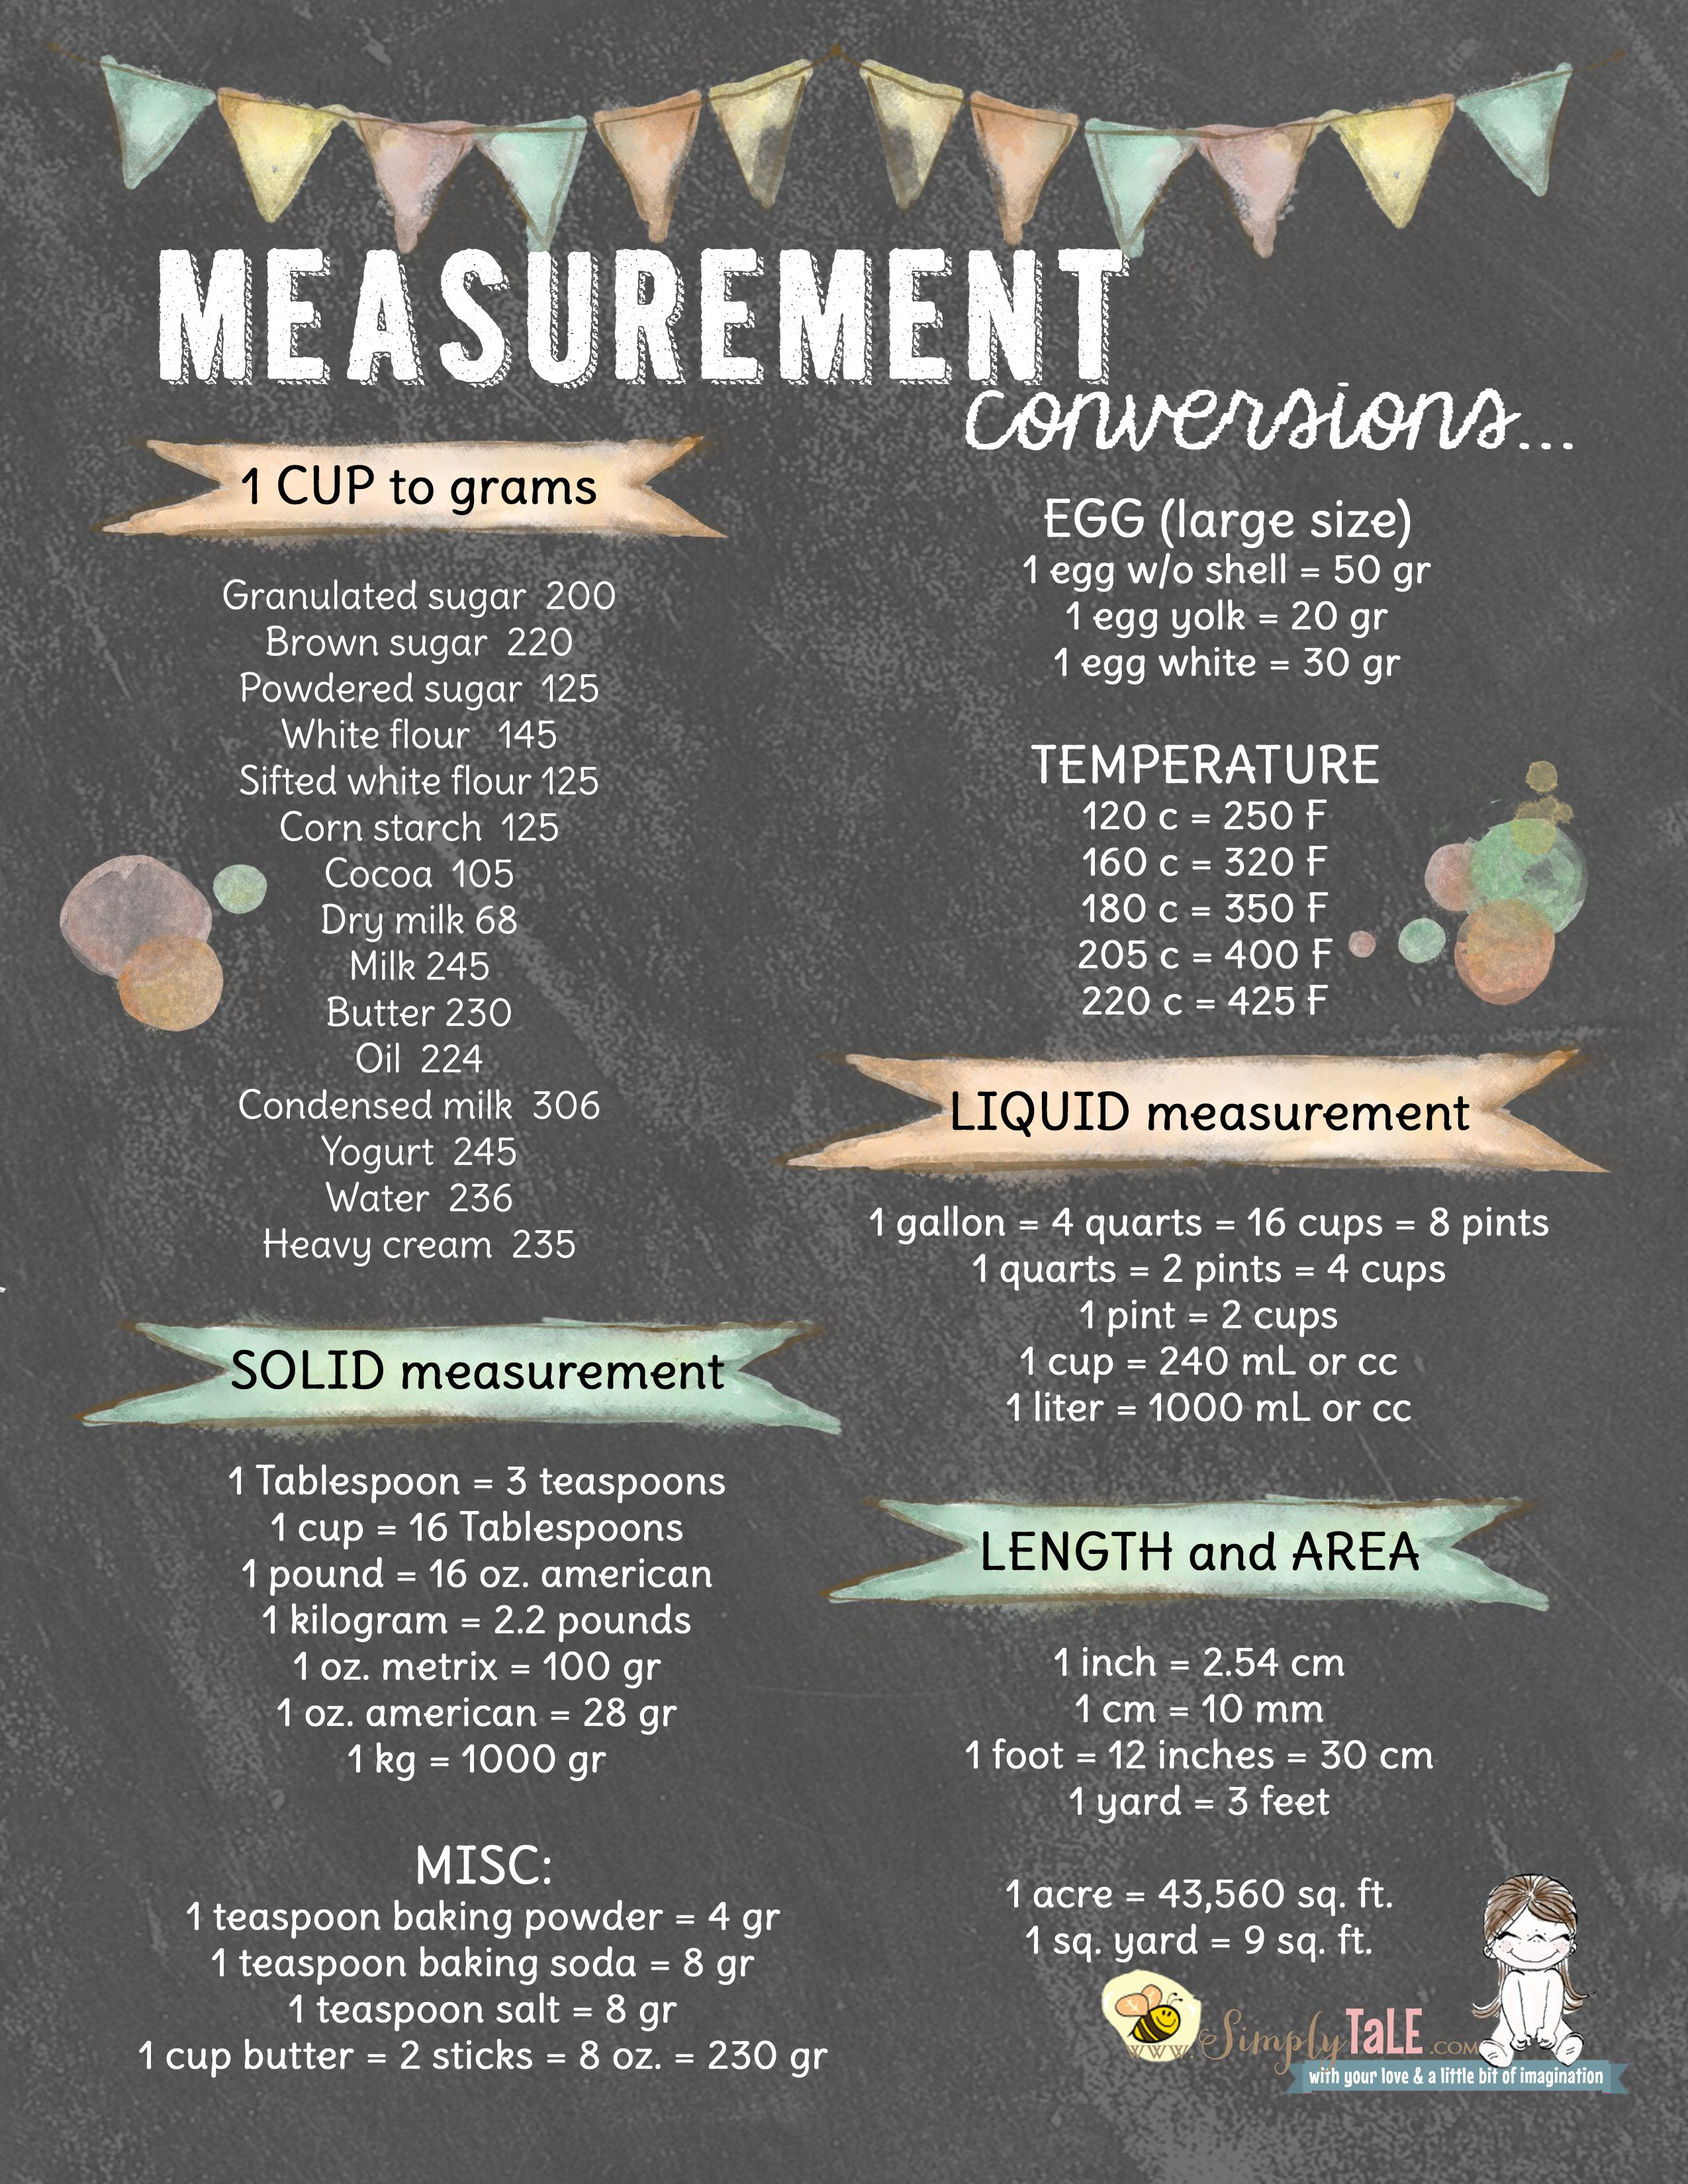 Kitchen conversion measurement conversionkitchen chart kitchen conversion measurement conversionkitchen chart conversion chart baking conversion nvjuhfo Gallery